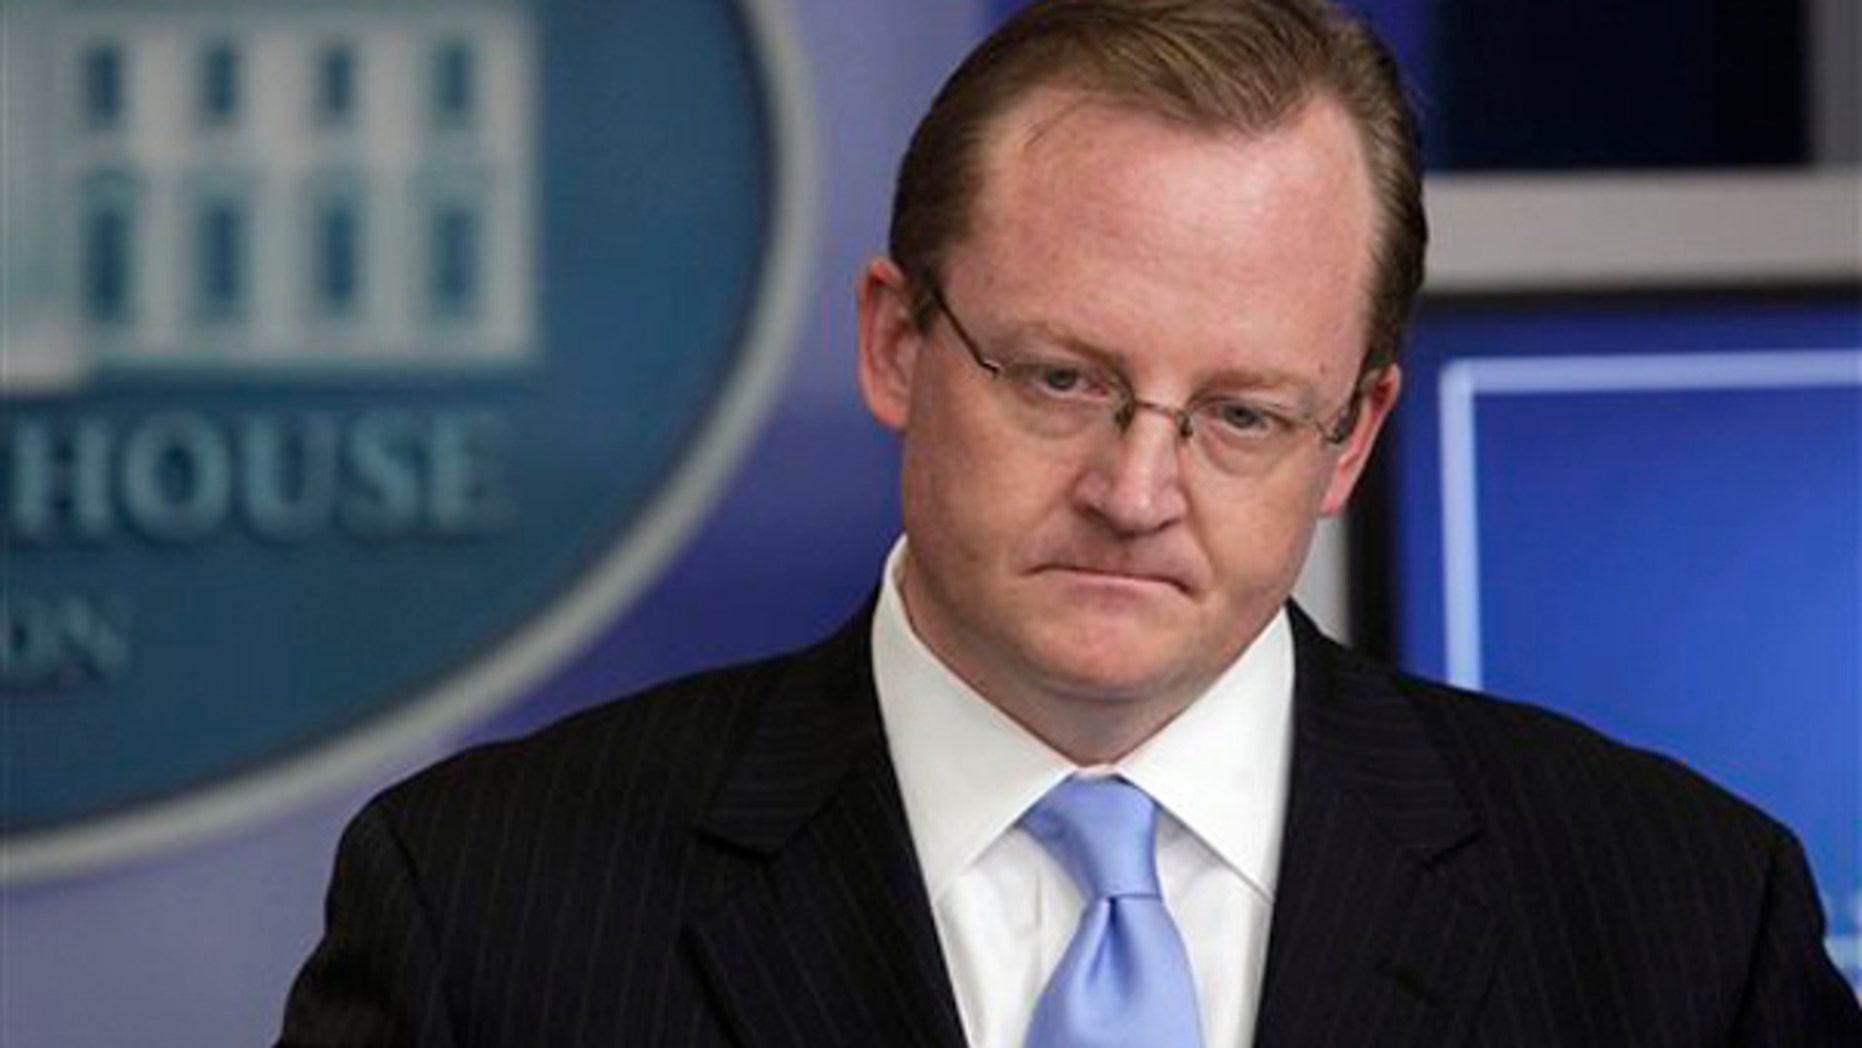 White House Press Secretary Robert Gibbs is shown here at the White House Nov. 2. (AP Photo)